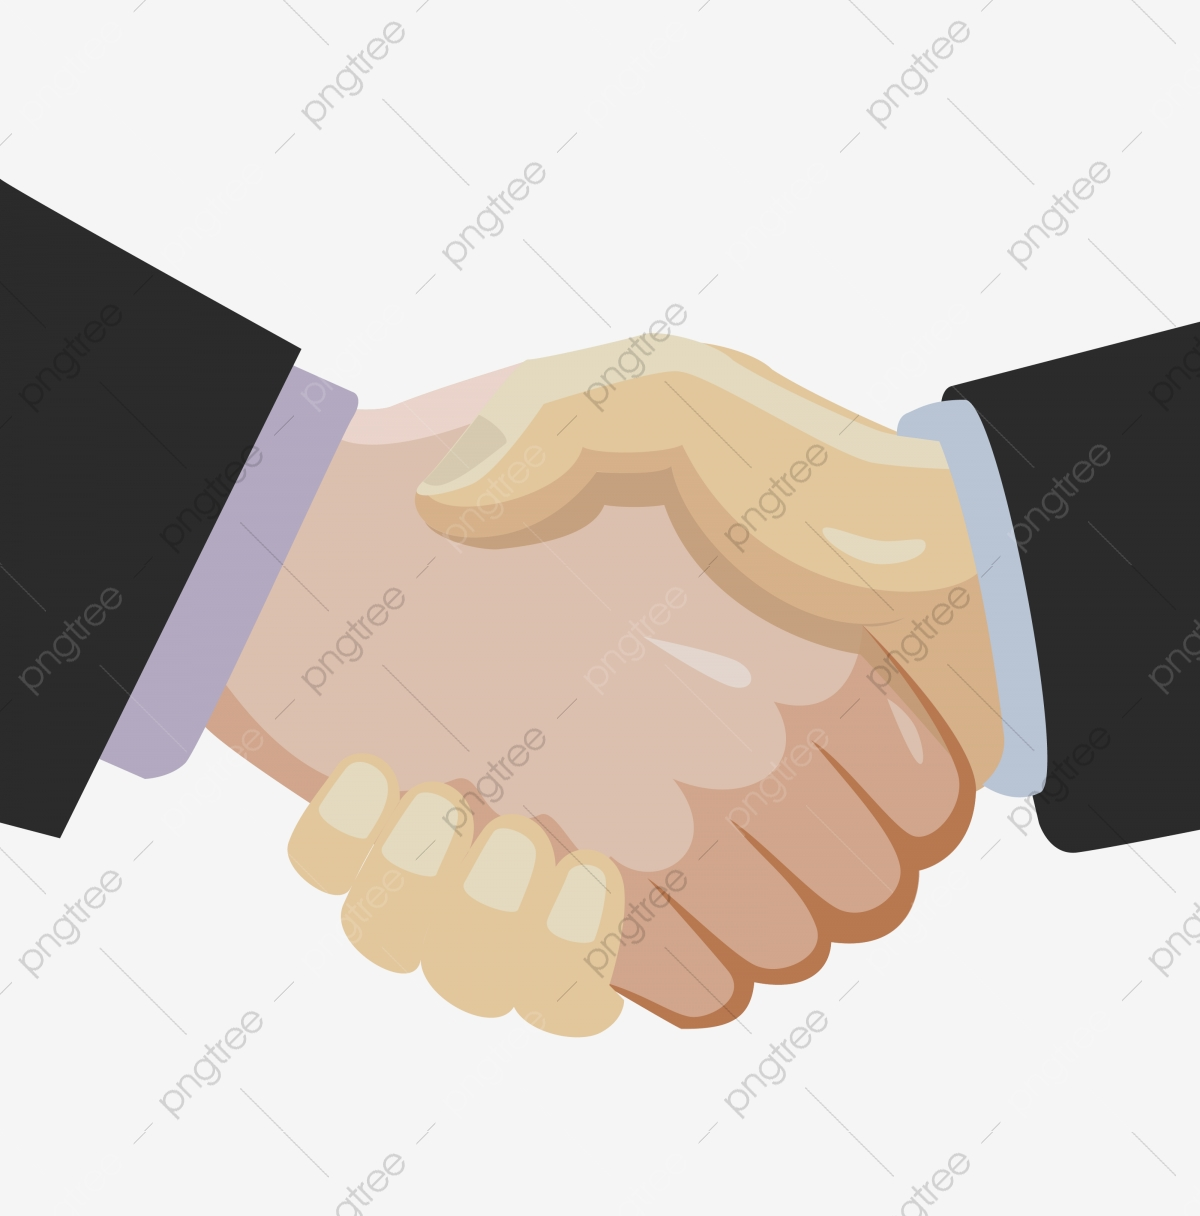 Hands Gesture Png Images Vector And Psd Files Free Download On Pngtree Free icons of hand sign in various ui design styles for web, mobile, and graphic design projects. https pngtree com freepng hand shake hand gesture 5374135 html